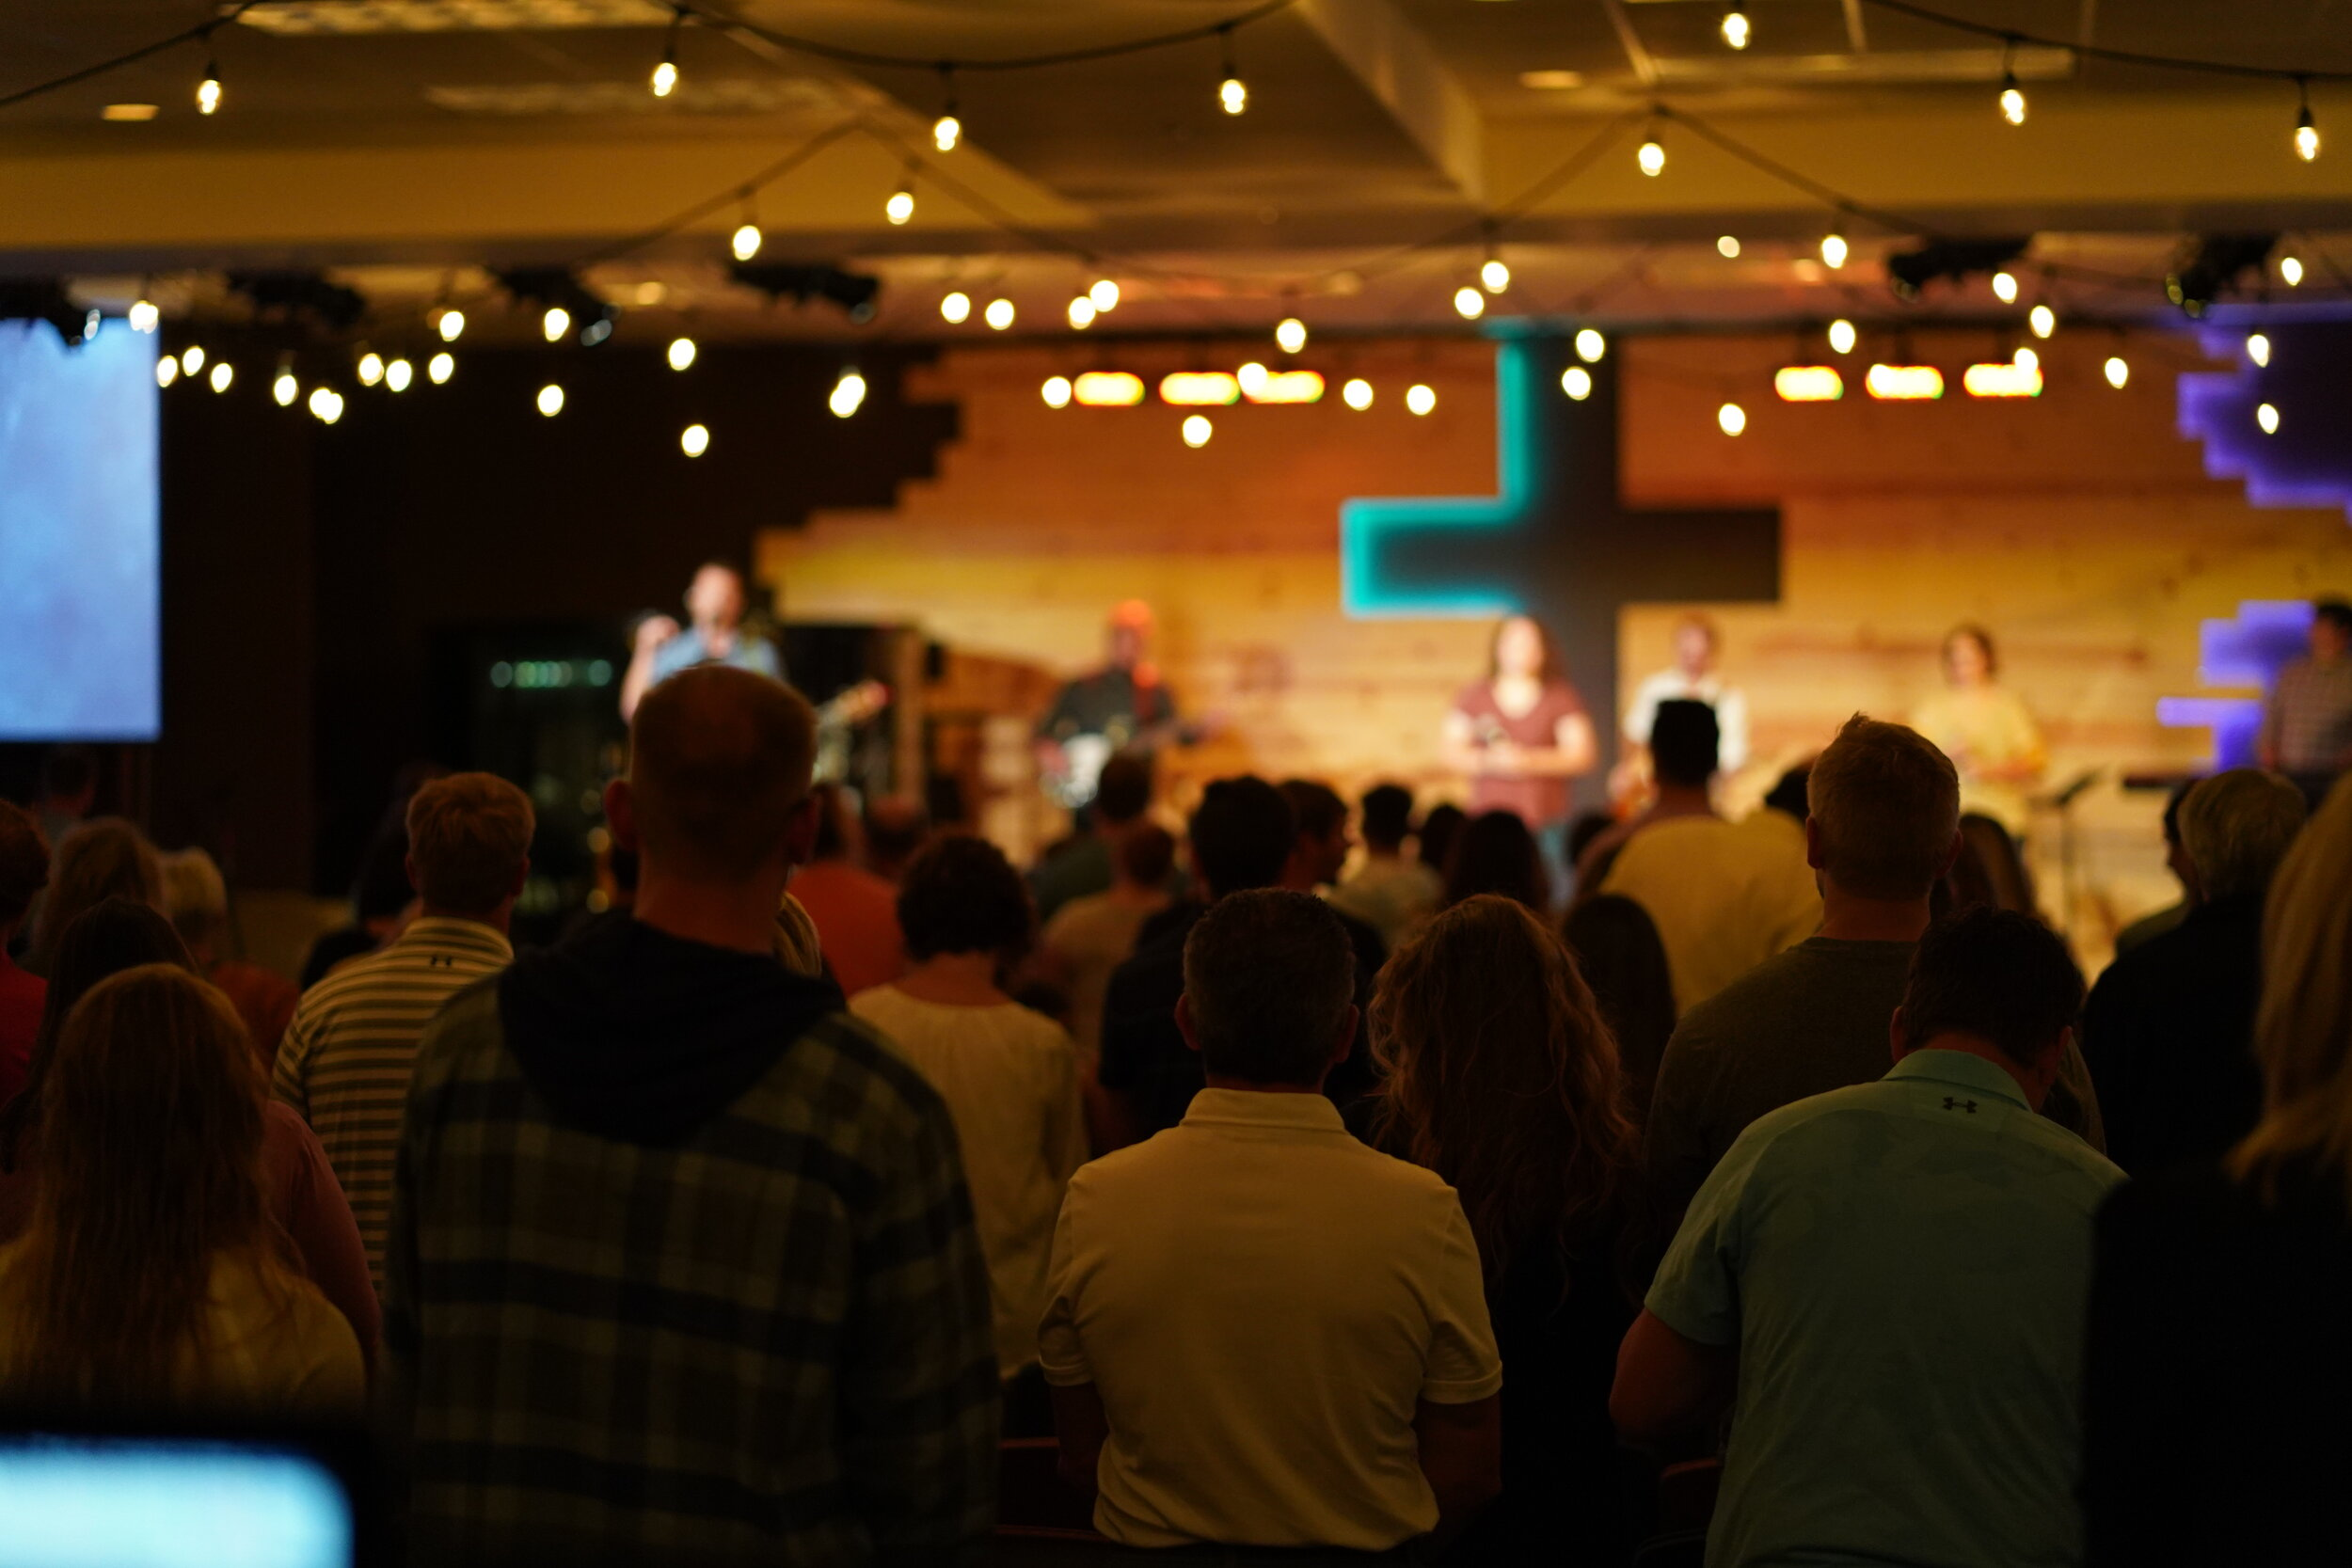 North Campus - 619 8th Ave NWAberdeen, SD57401